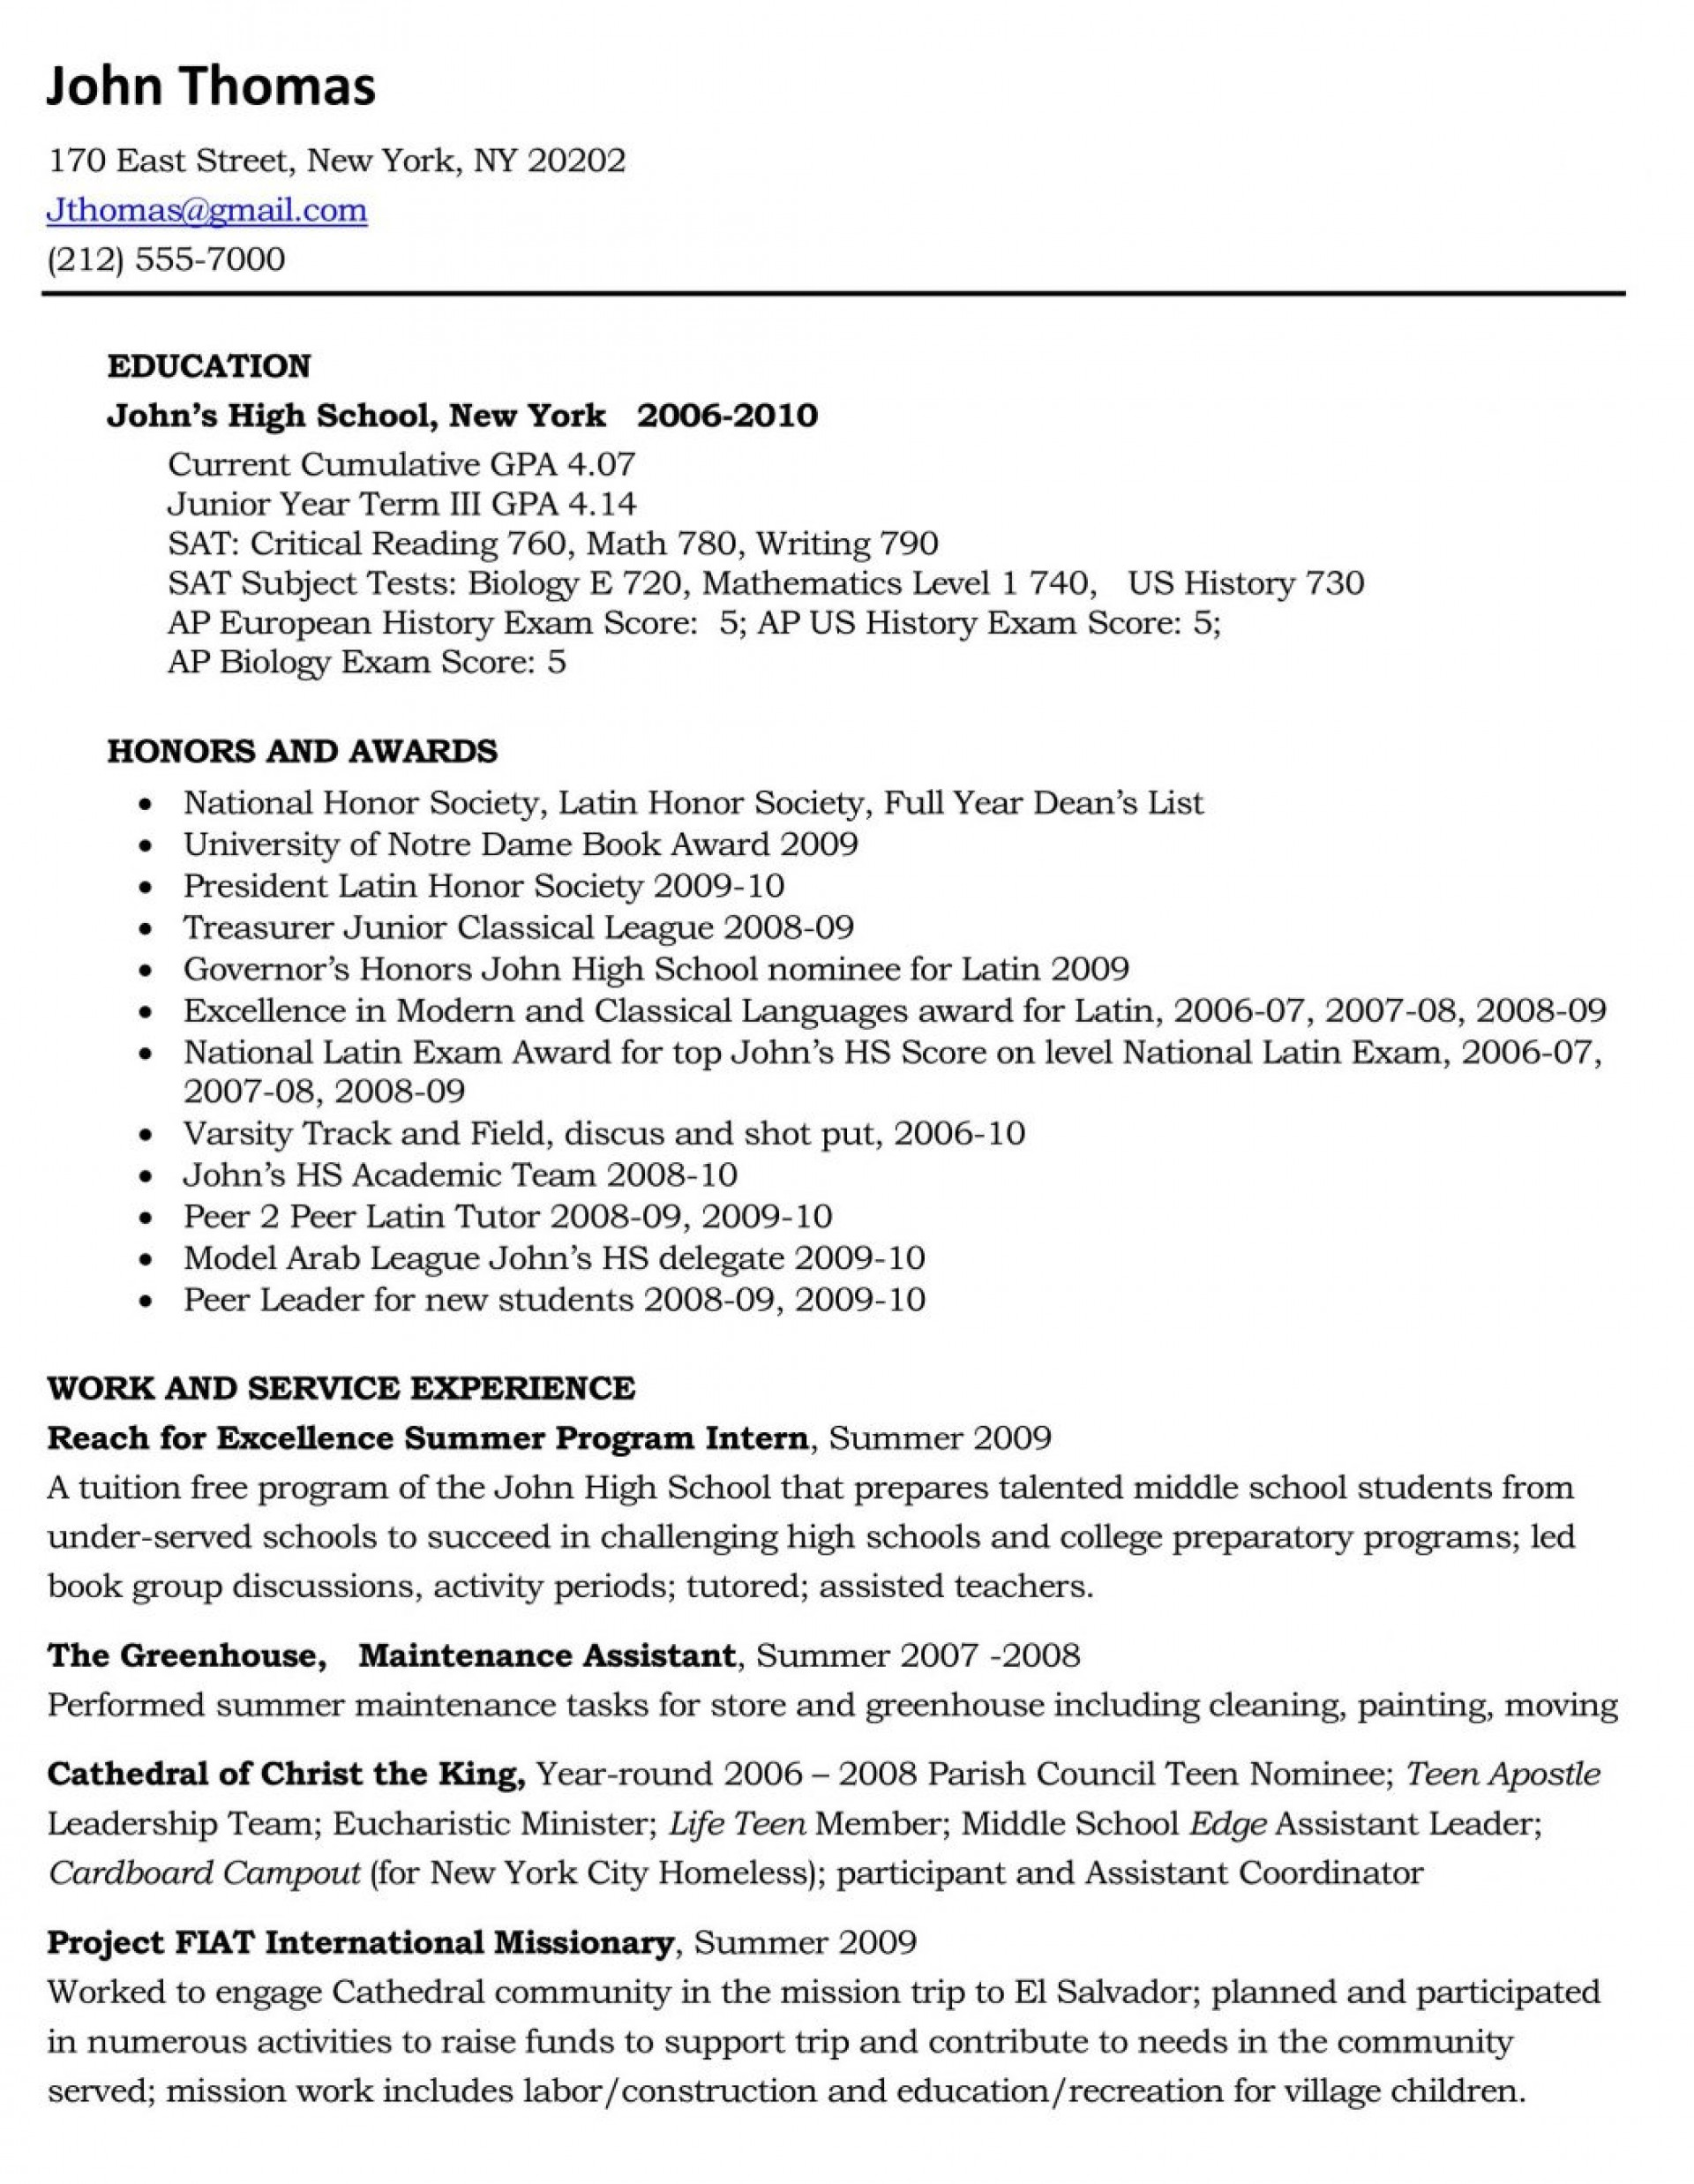 008 Essay On Texting Resume Jpg Persuasive While Driving Ou Outline And 1048x1351 Singular Essays Argumentative Scholarship 1920